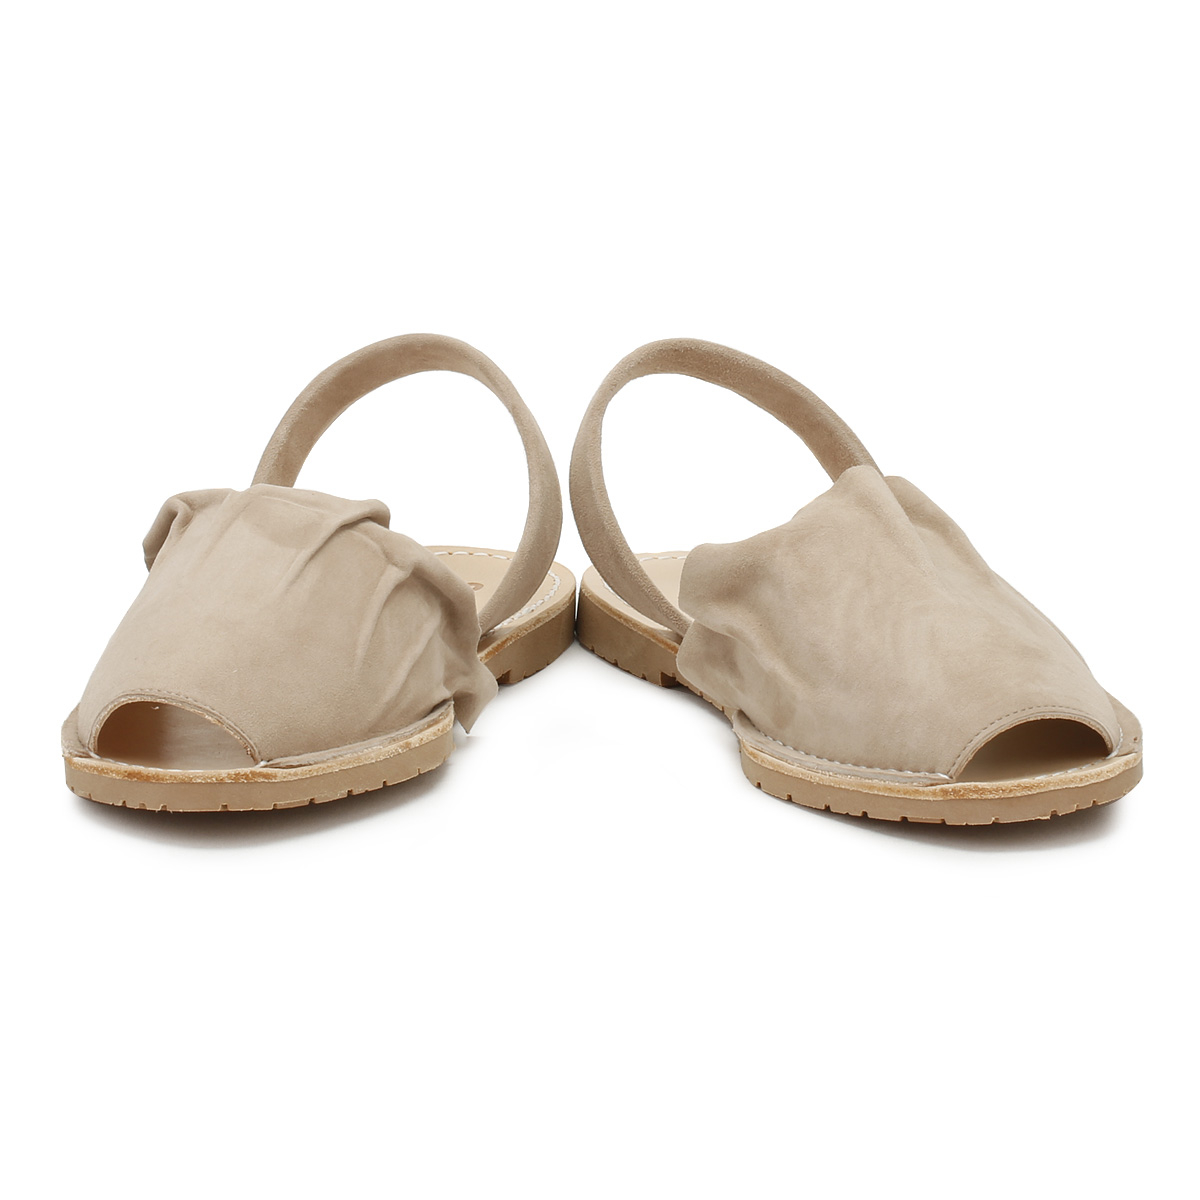 Solillas Womens Sandals Summer Taupe Volant Suede Flats Summer Sandals Casual Shoes b2db4a